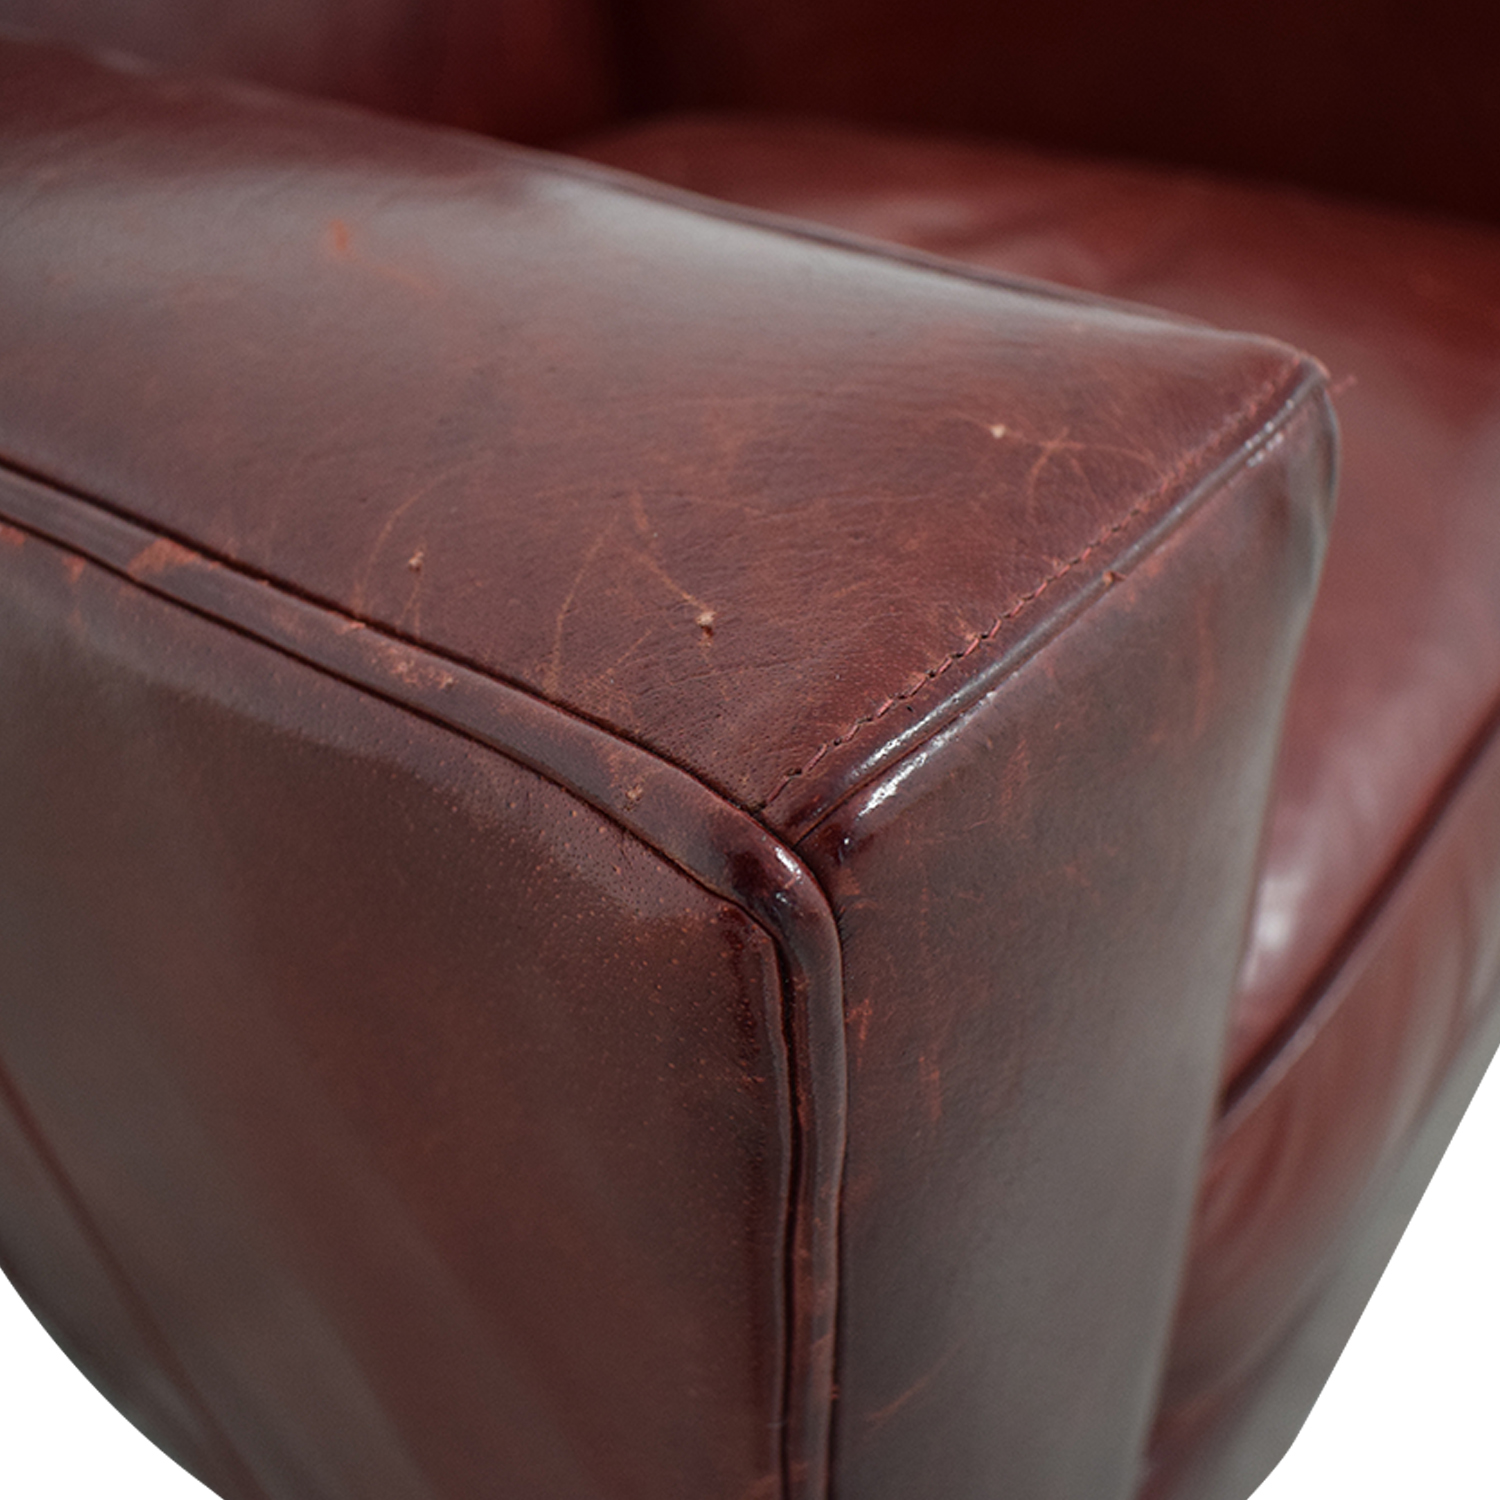 Crate & Barrel Crate & Barrel Swivel Red Accent Chair Accent Chairs